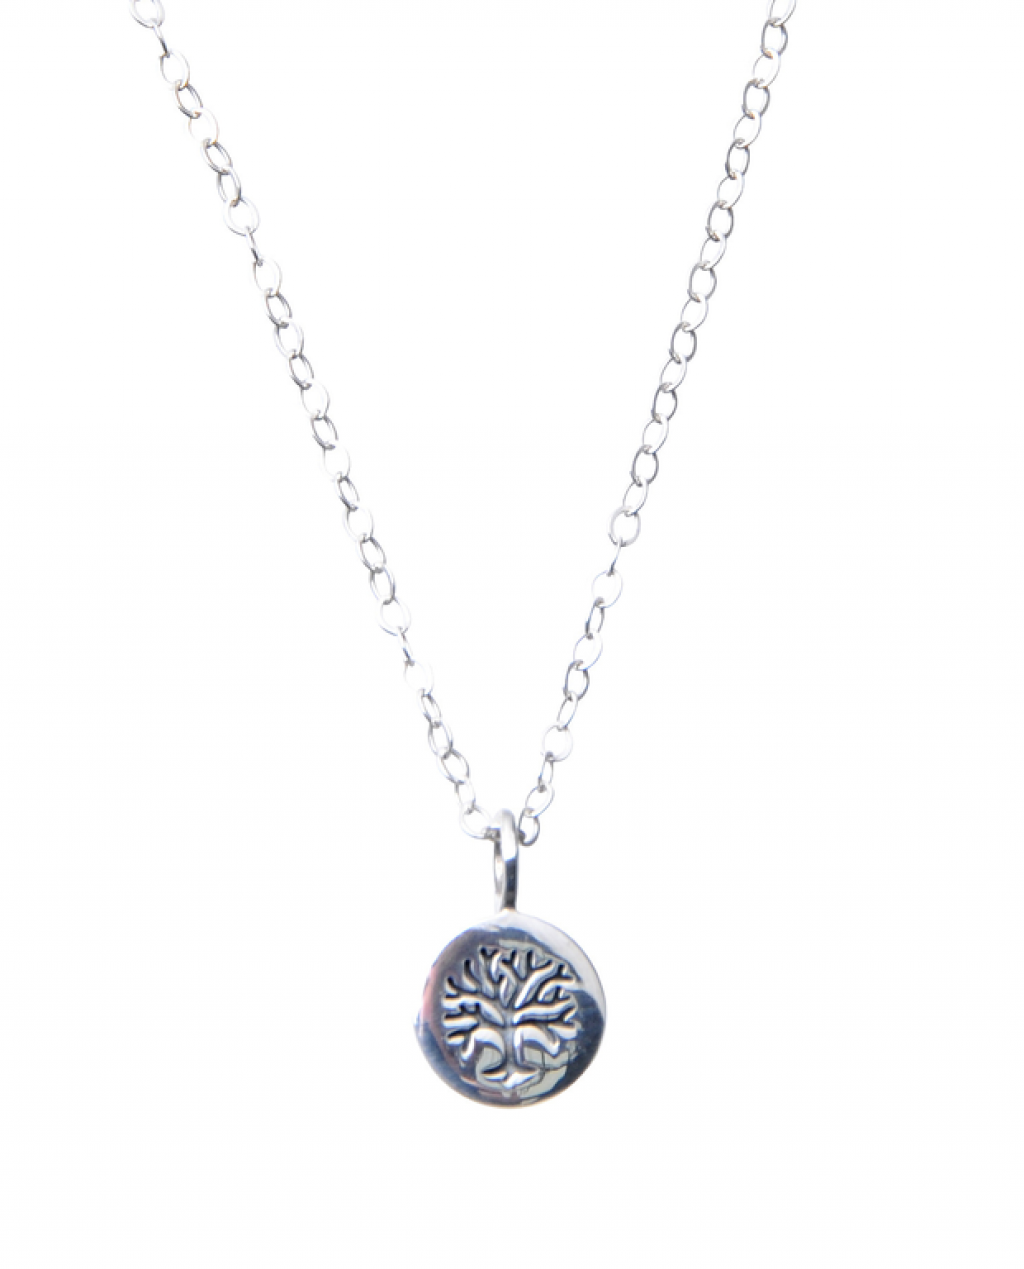 Pam Kerr Designs | Tree of Life Charm Necklace | Sterling Silver